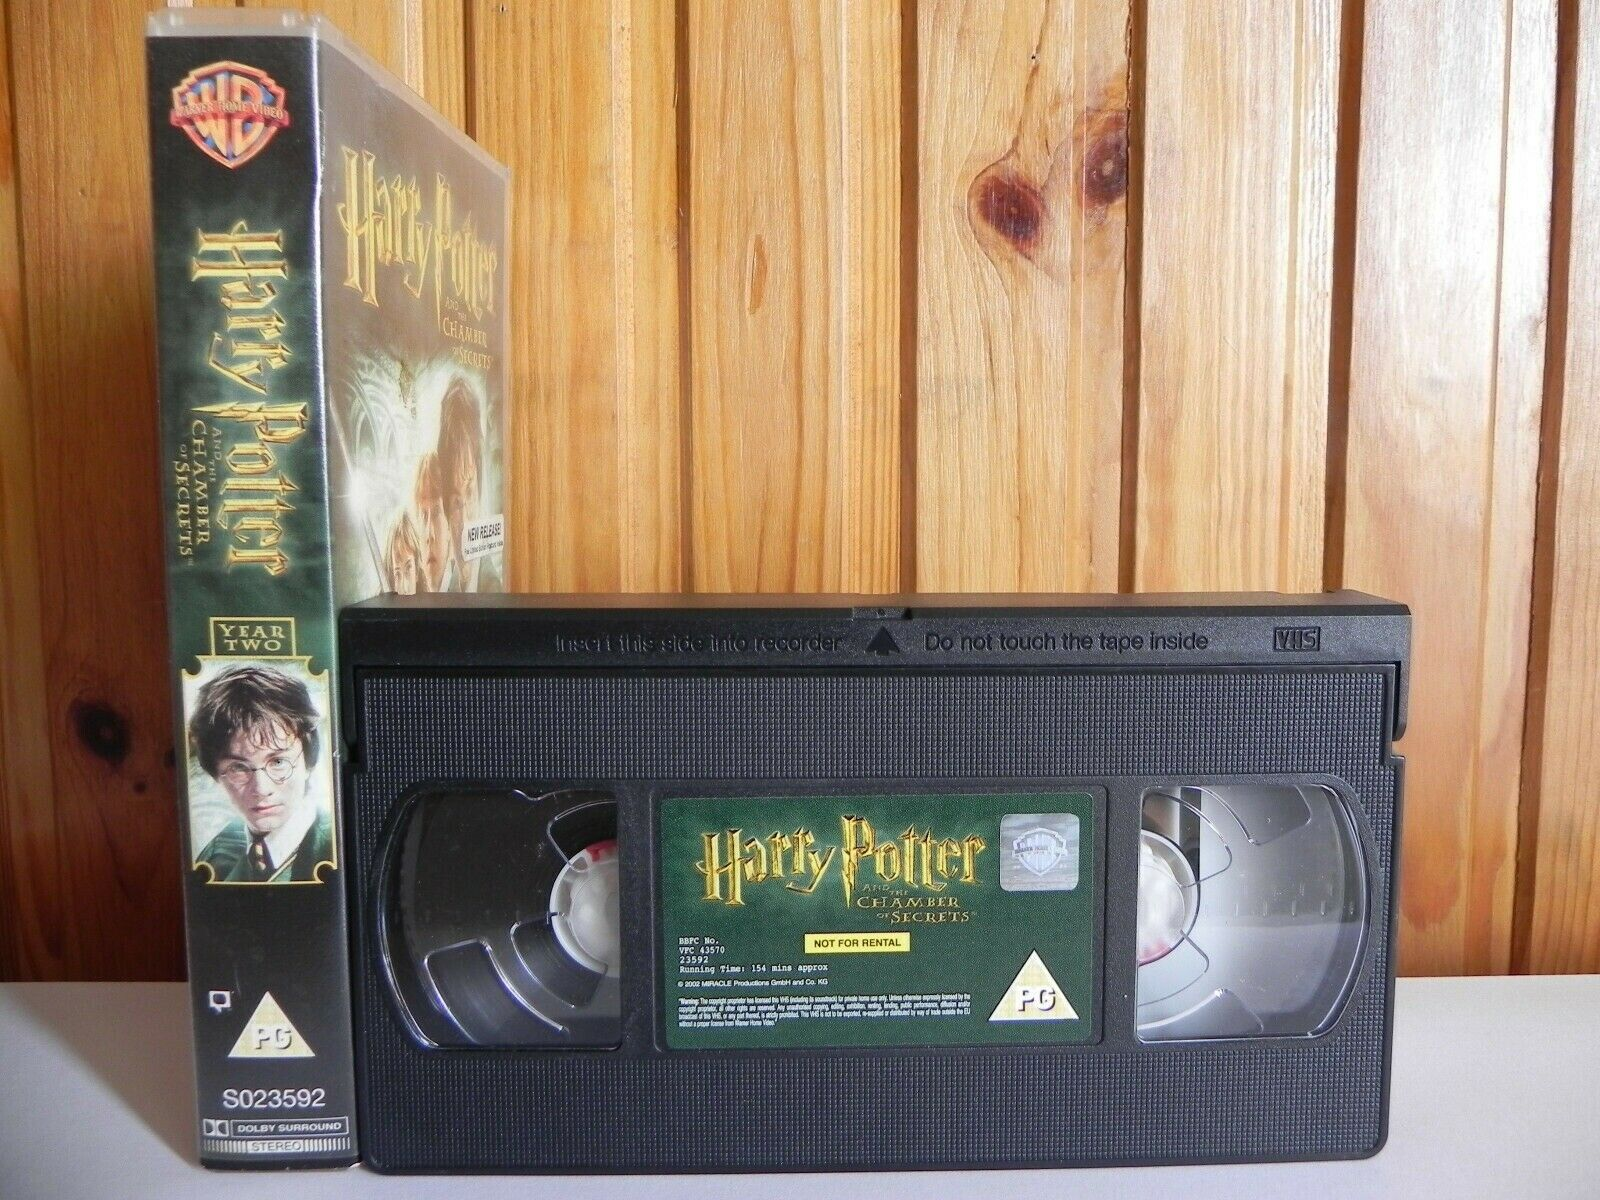 Harry Potter And The Chamber Of Secrets - Warner - Fantasy - Children's - VHS